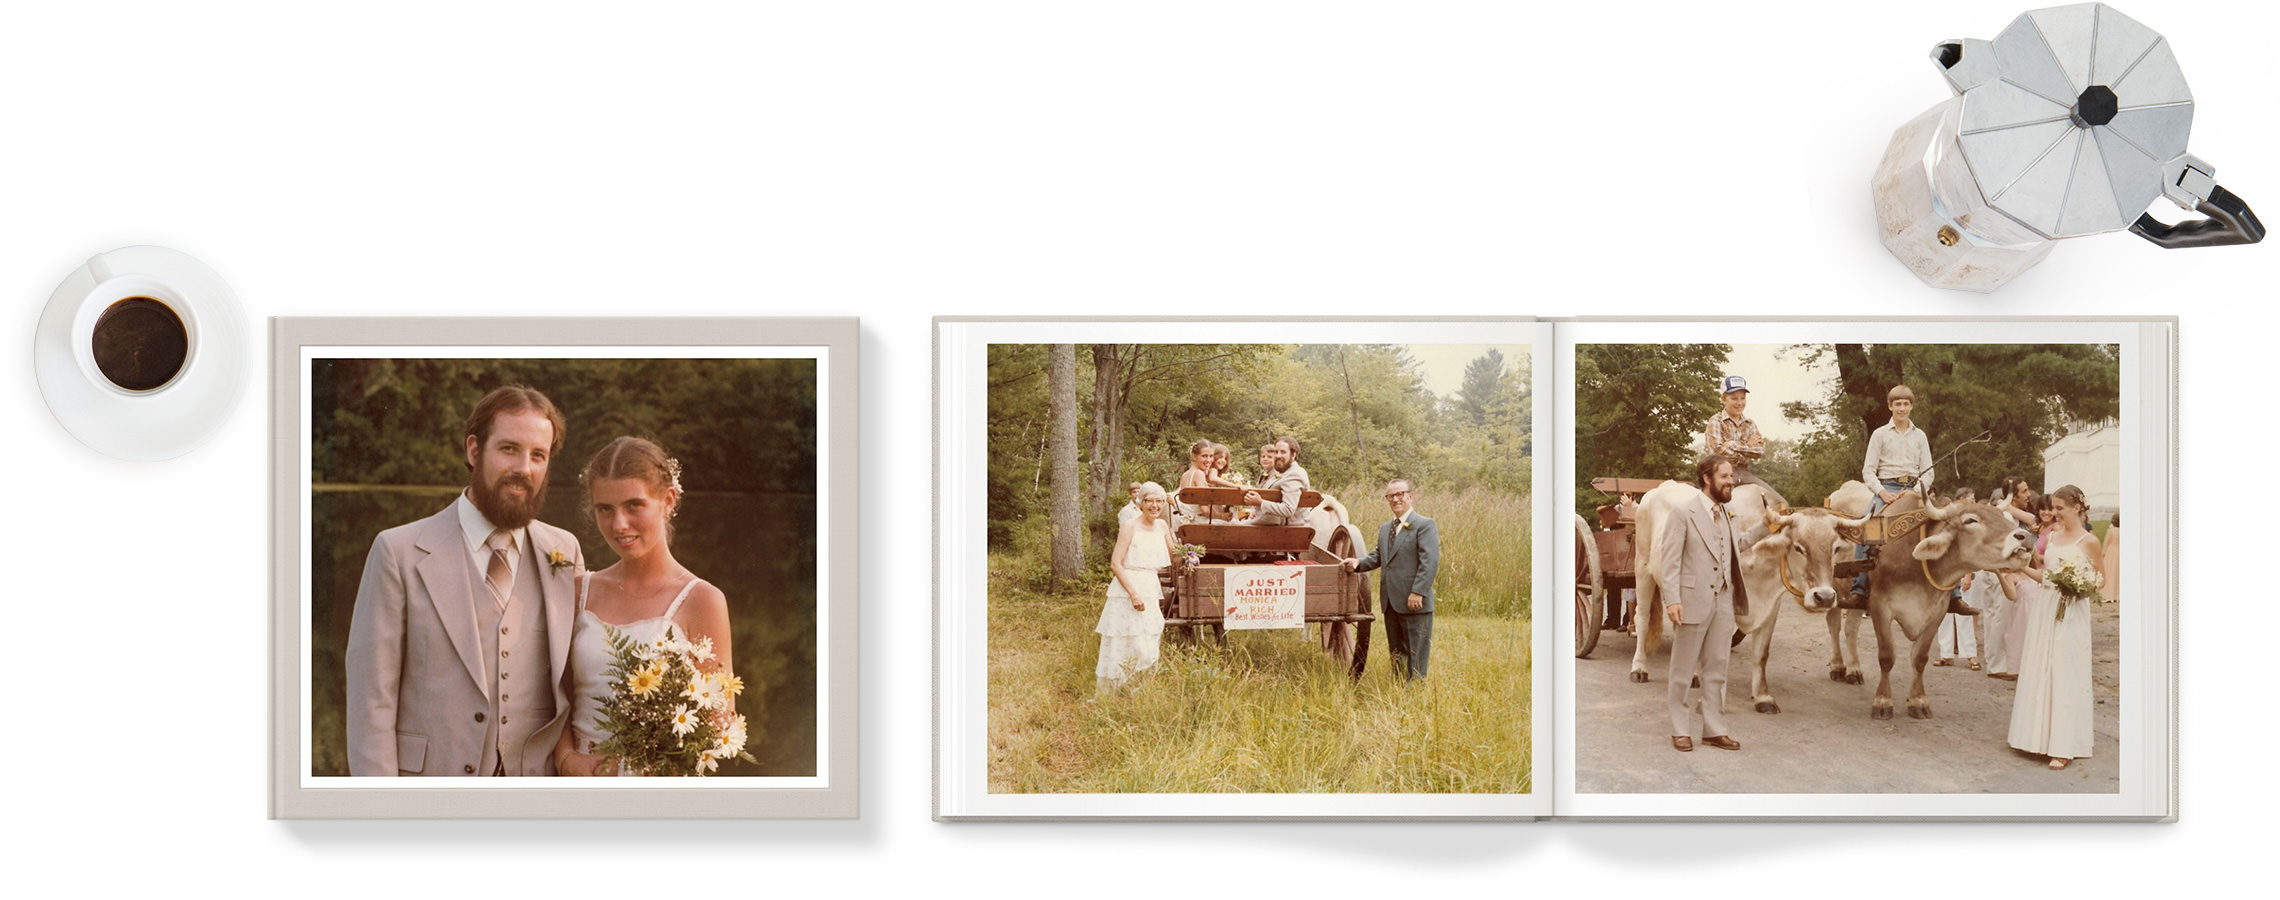 Classic Photo Book with old wedding photos.